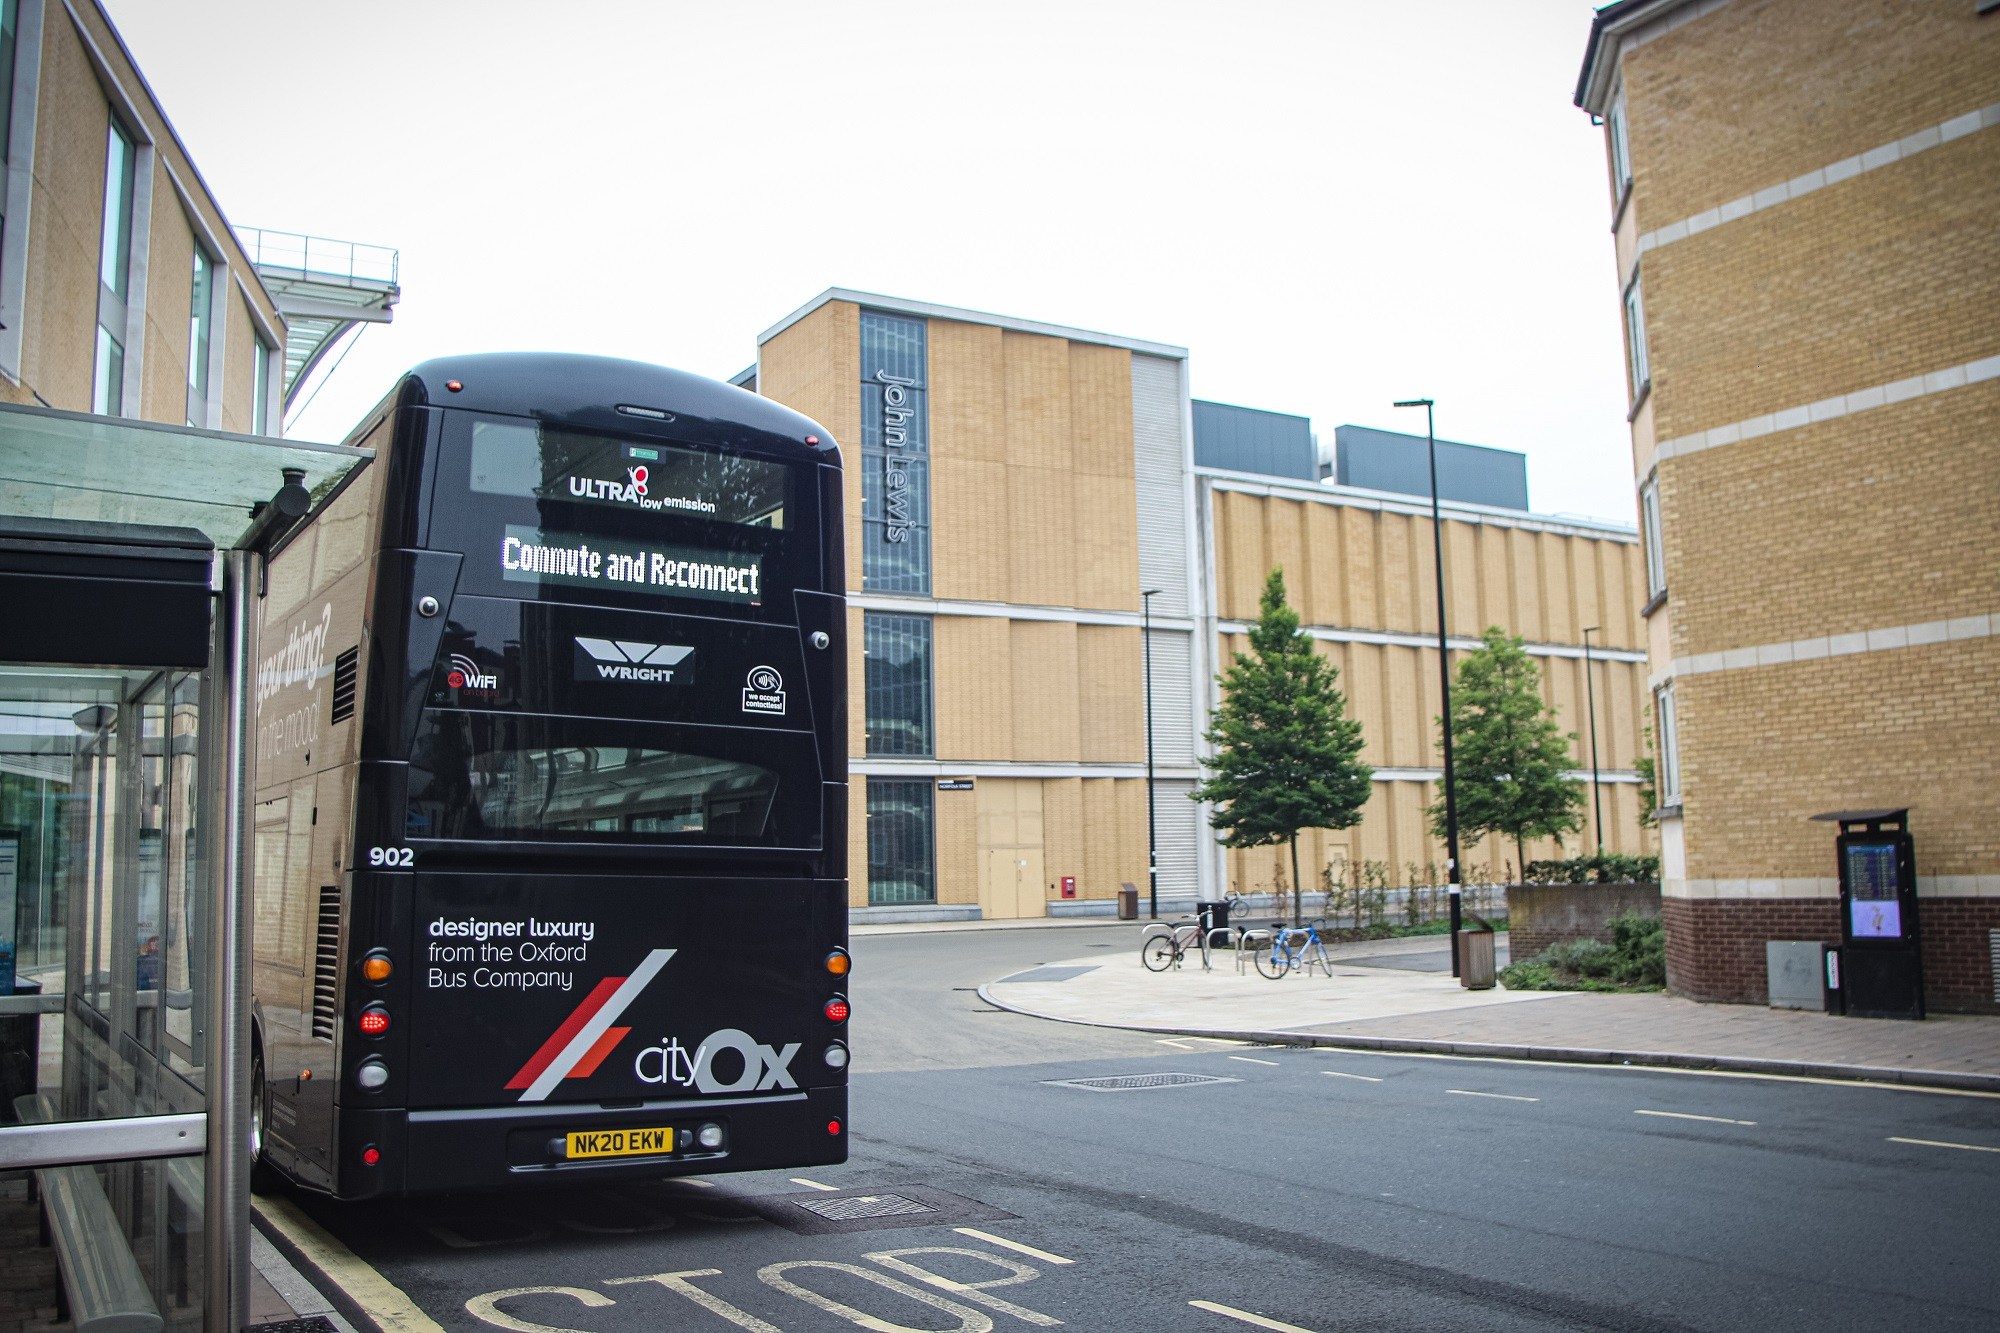 Operators collaborate on Back to Bus campaign